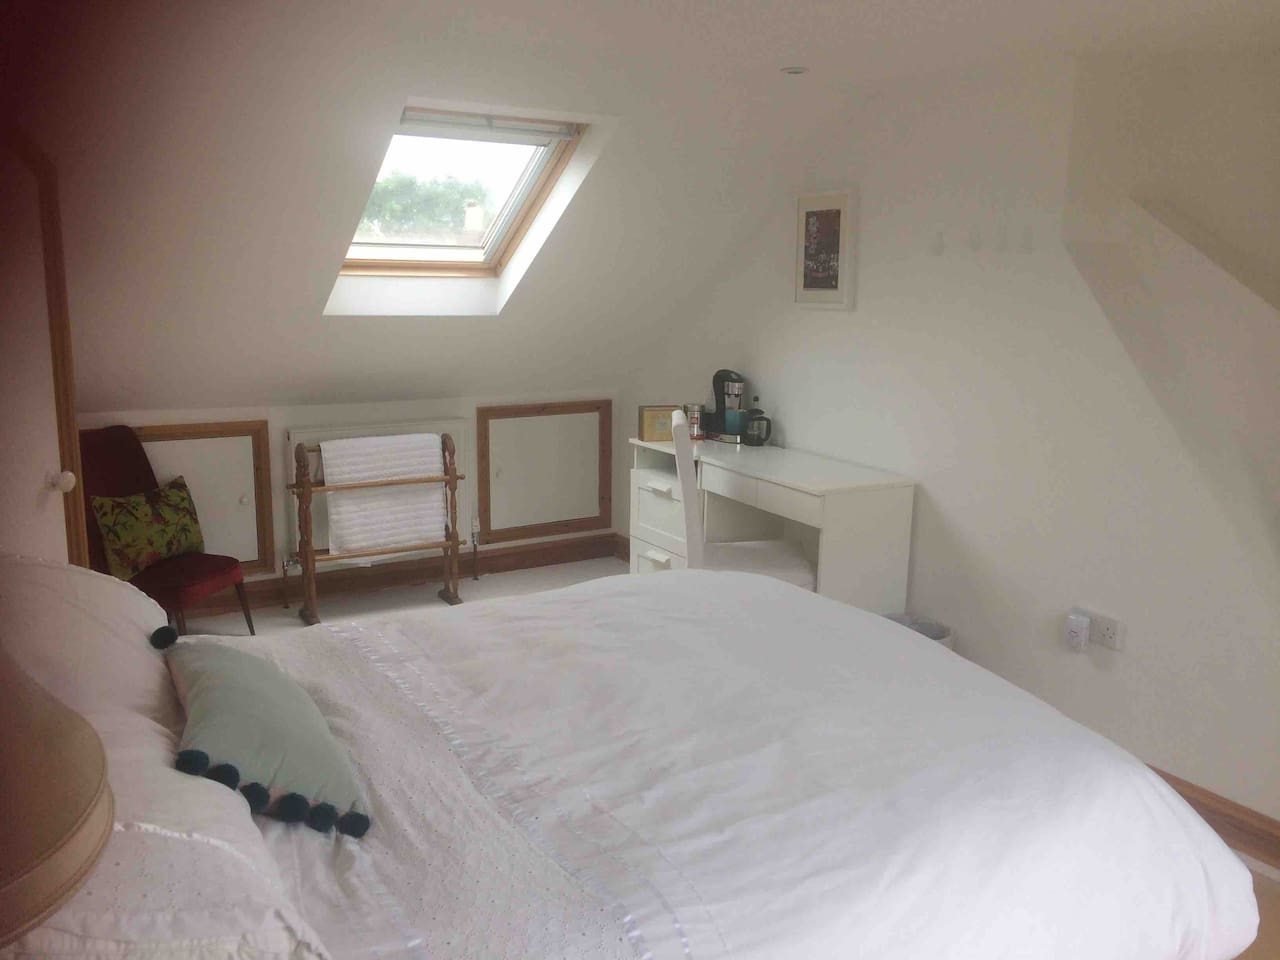 A lovely, bright & airy room - loft conversion - perfectly peaceful